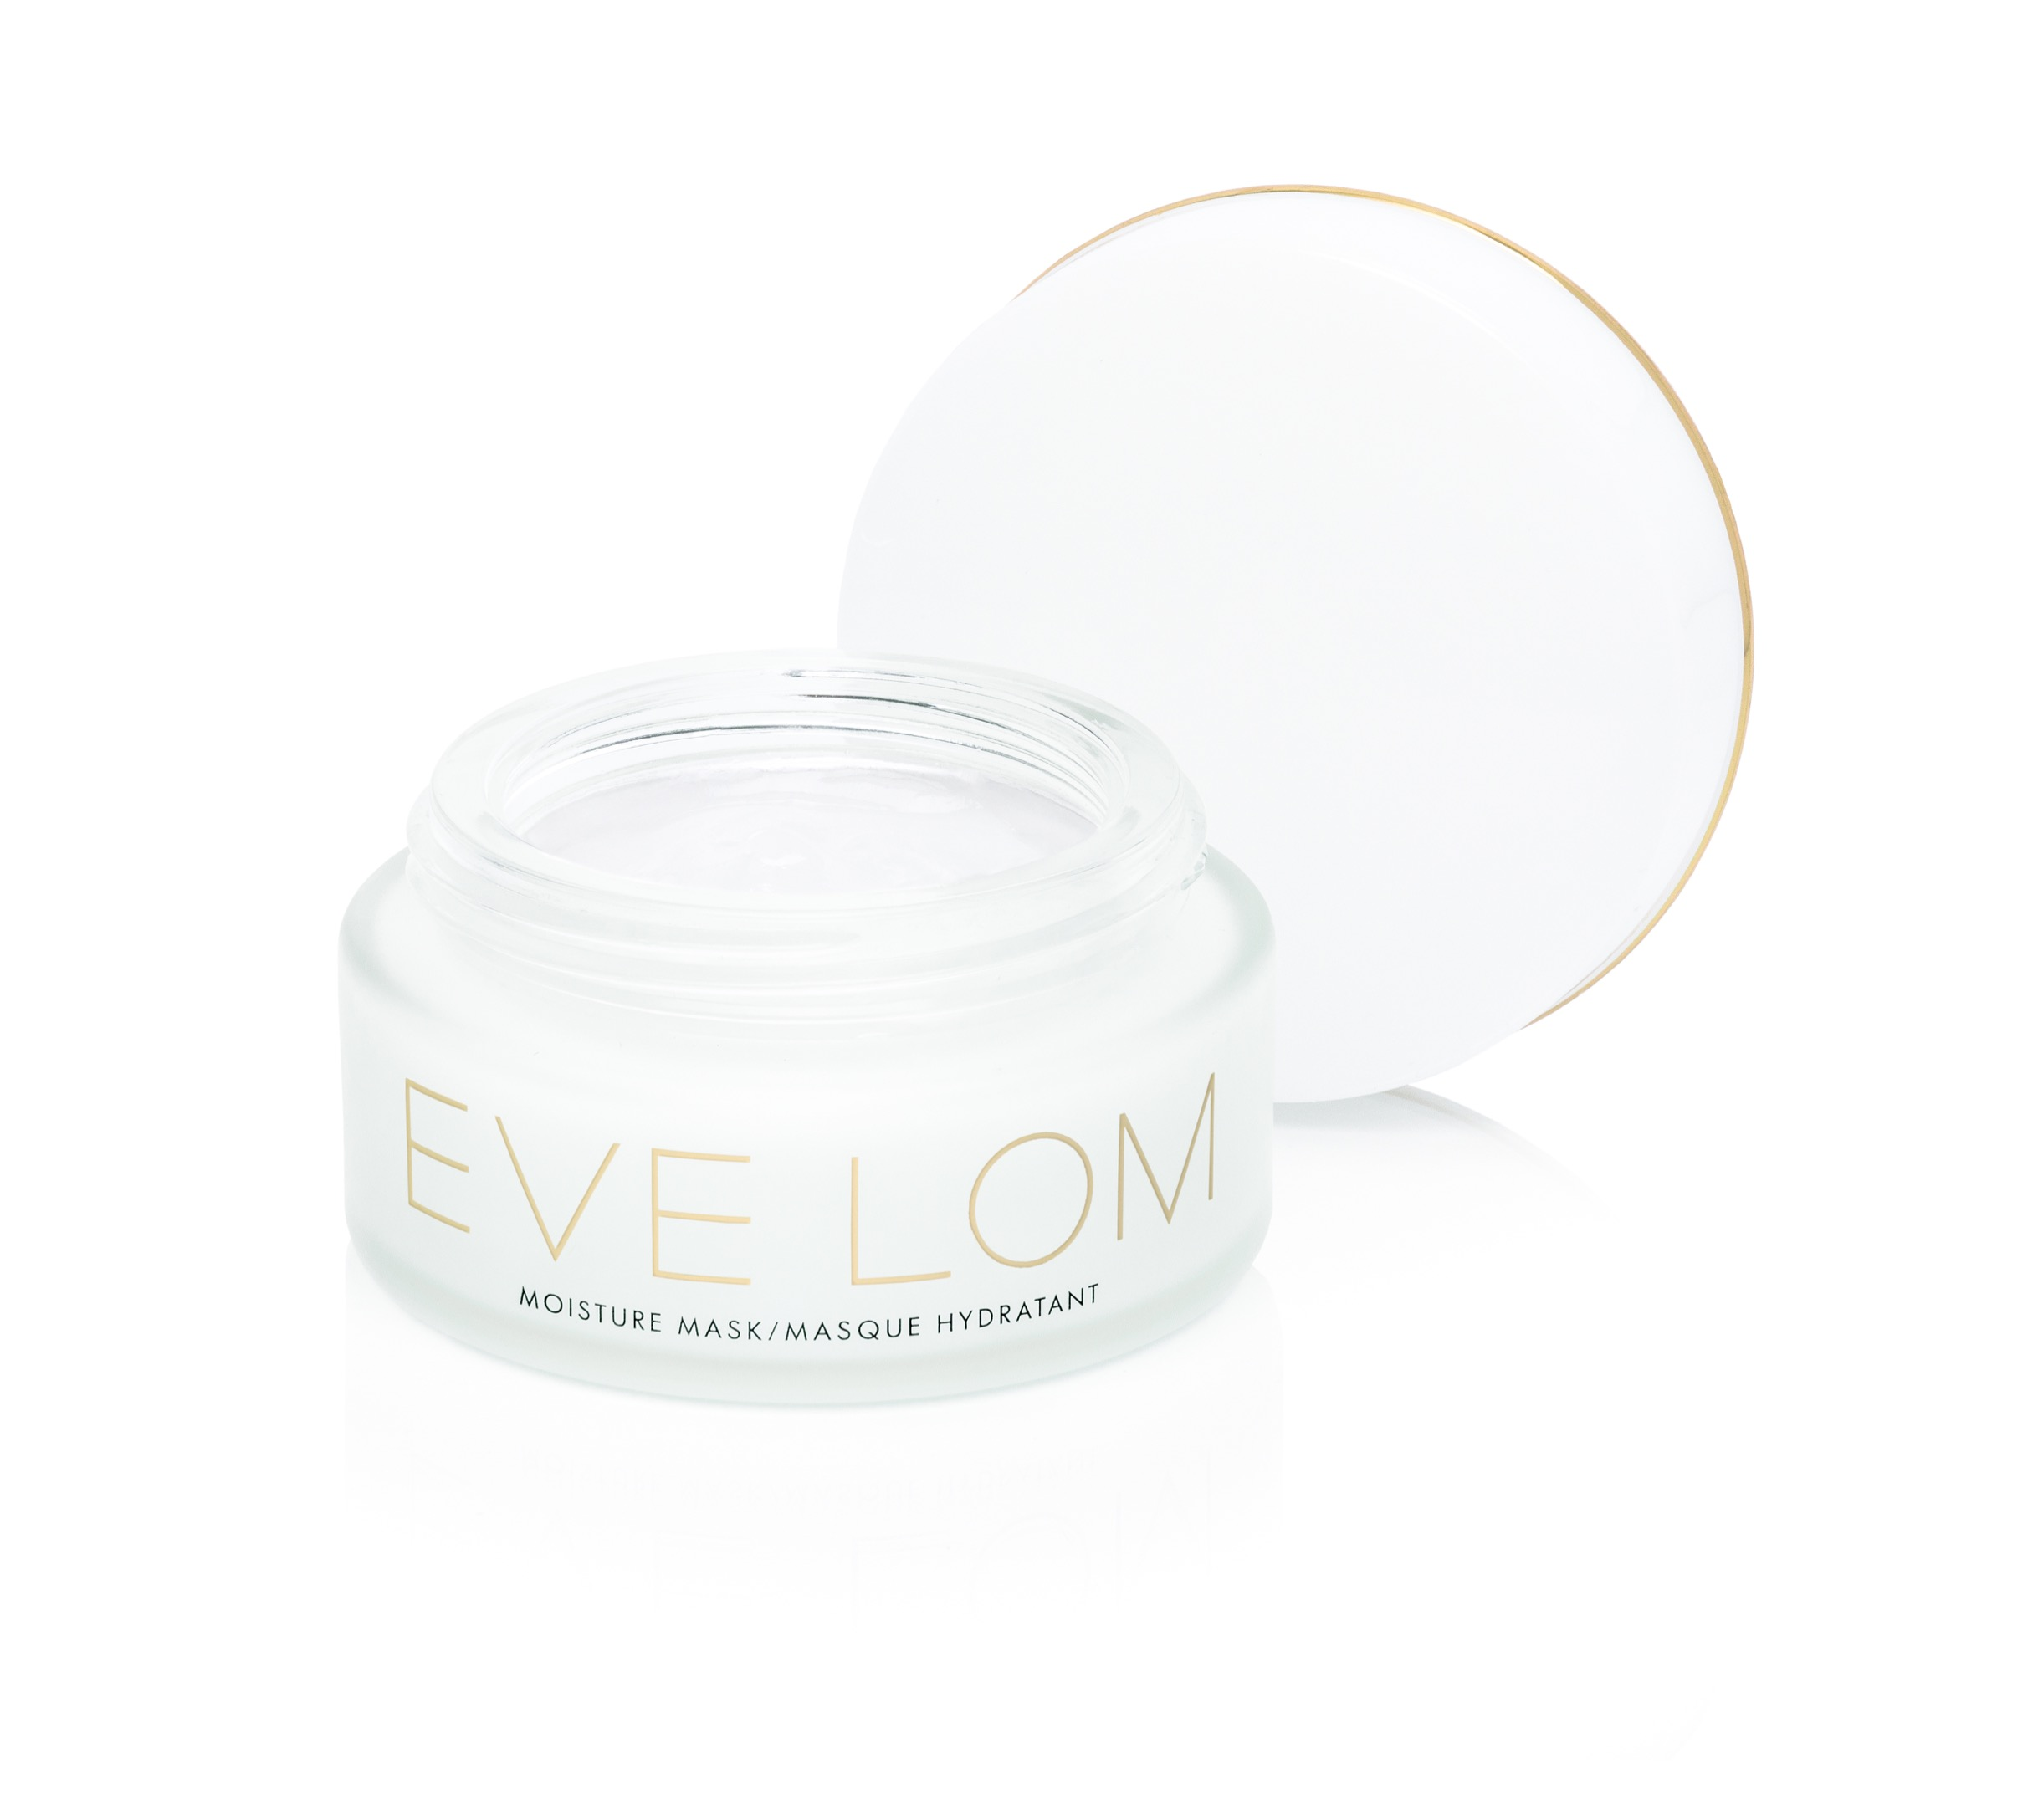 Copy of Eve Lom Moisture Mask, Available at Eve Lom